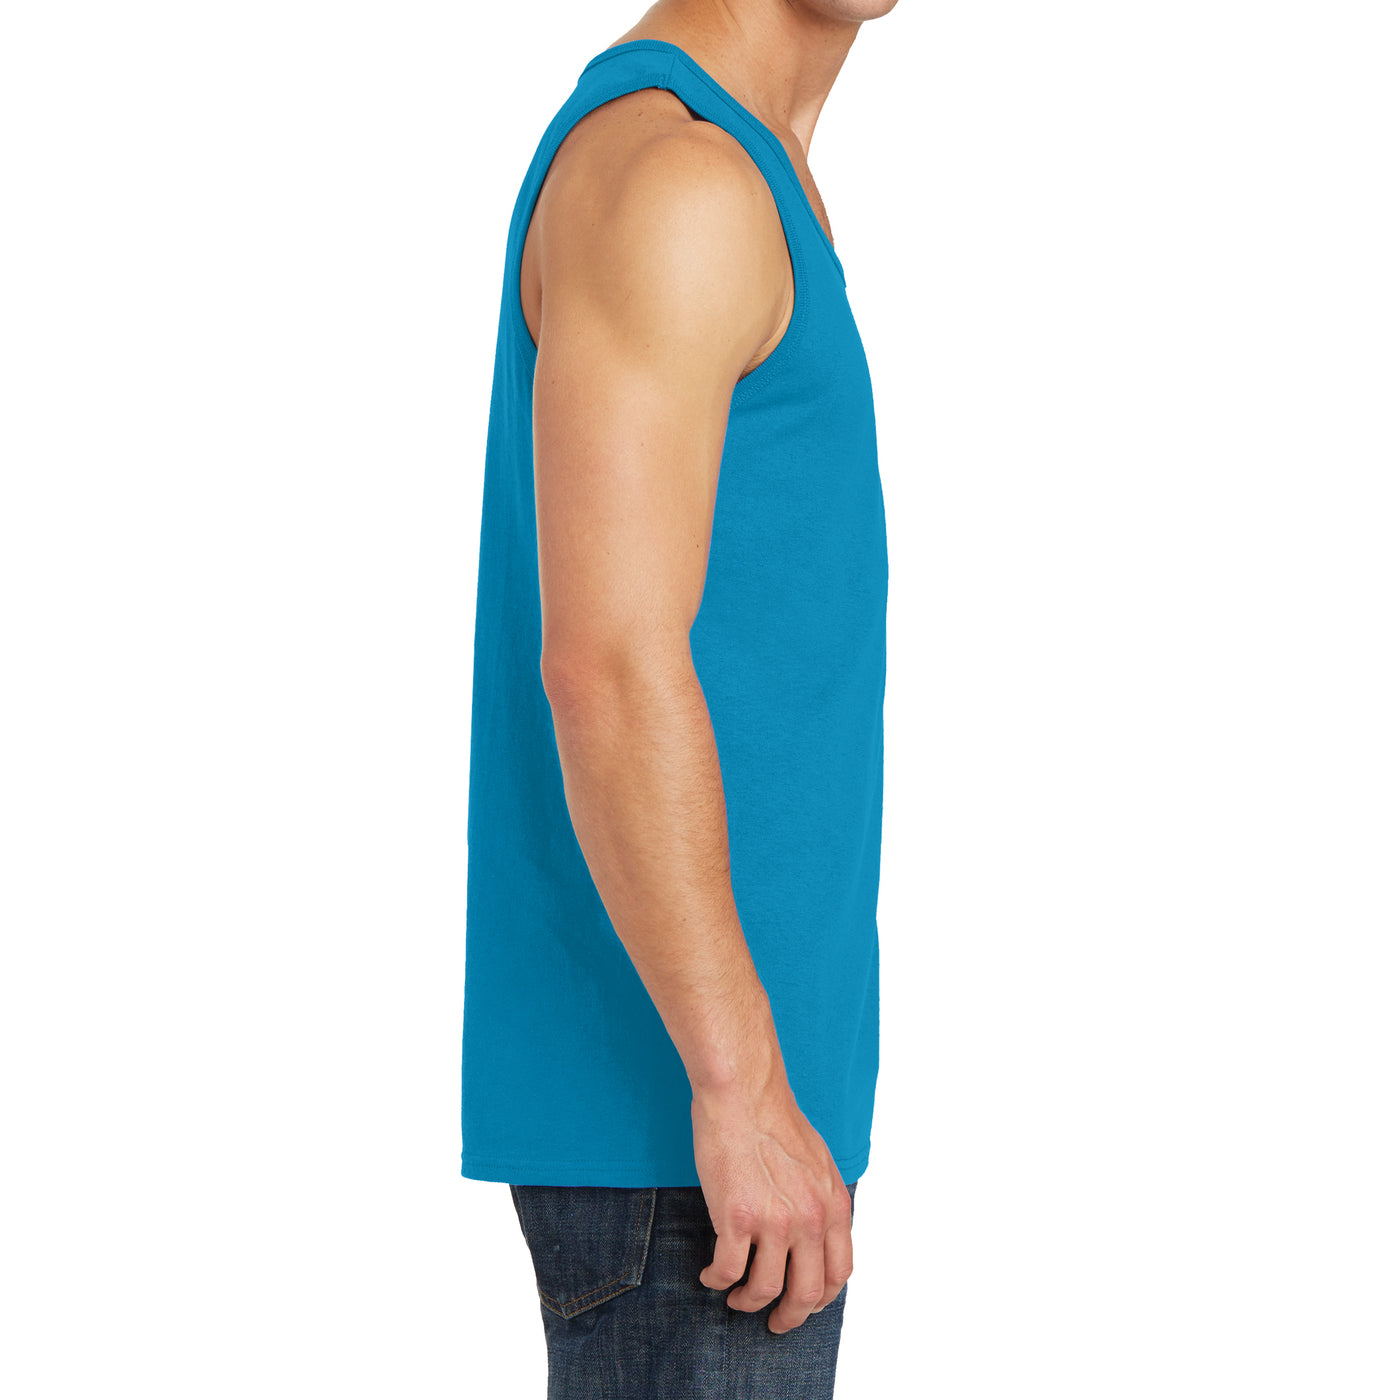 Men's Core Cotton Tank Top - Neon Blue - Side